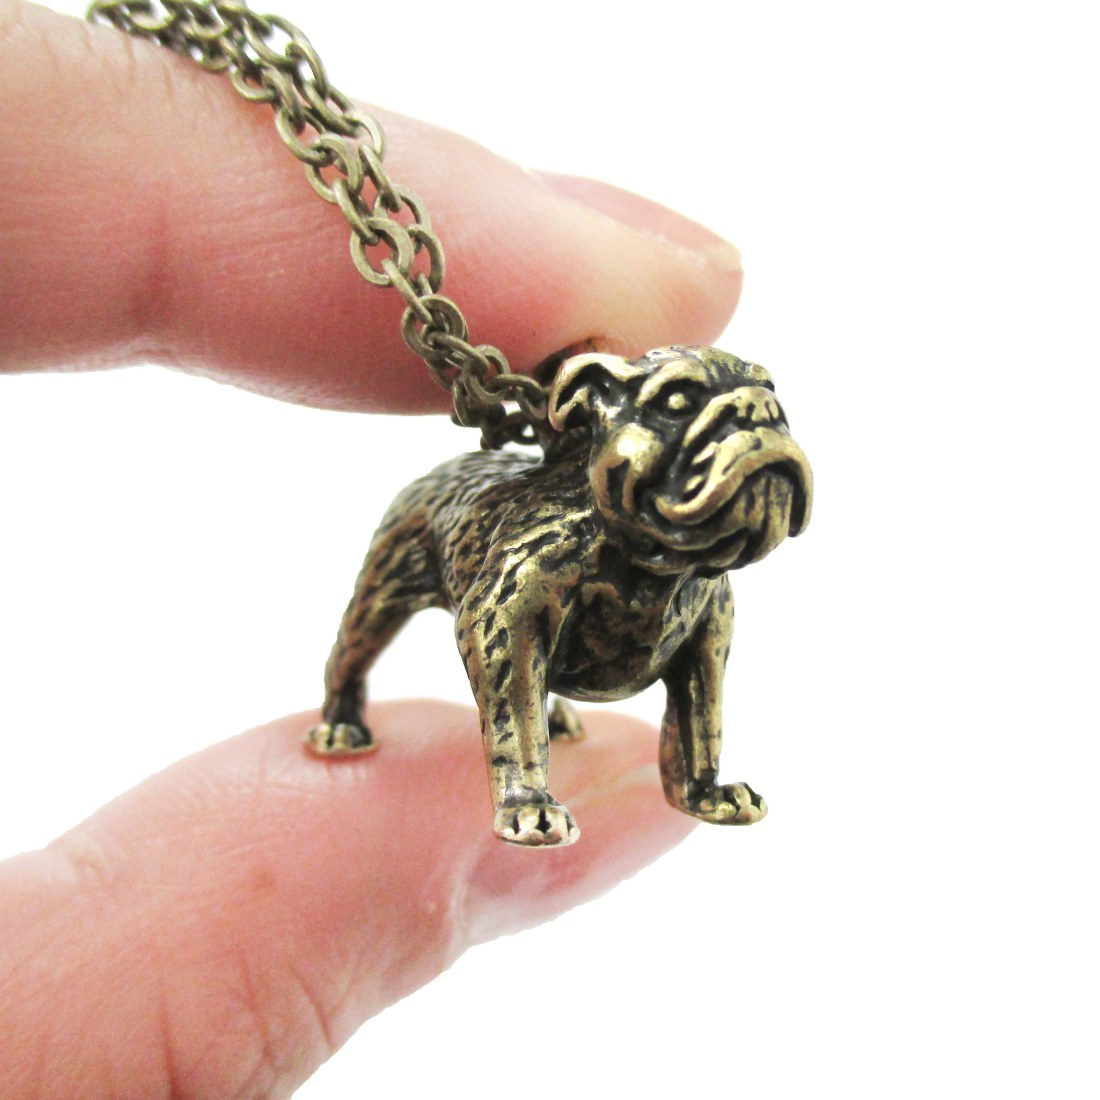 3D Detailed Bulldog Animal Charm Dog Lover Themed Necklace in Brass